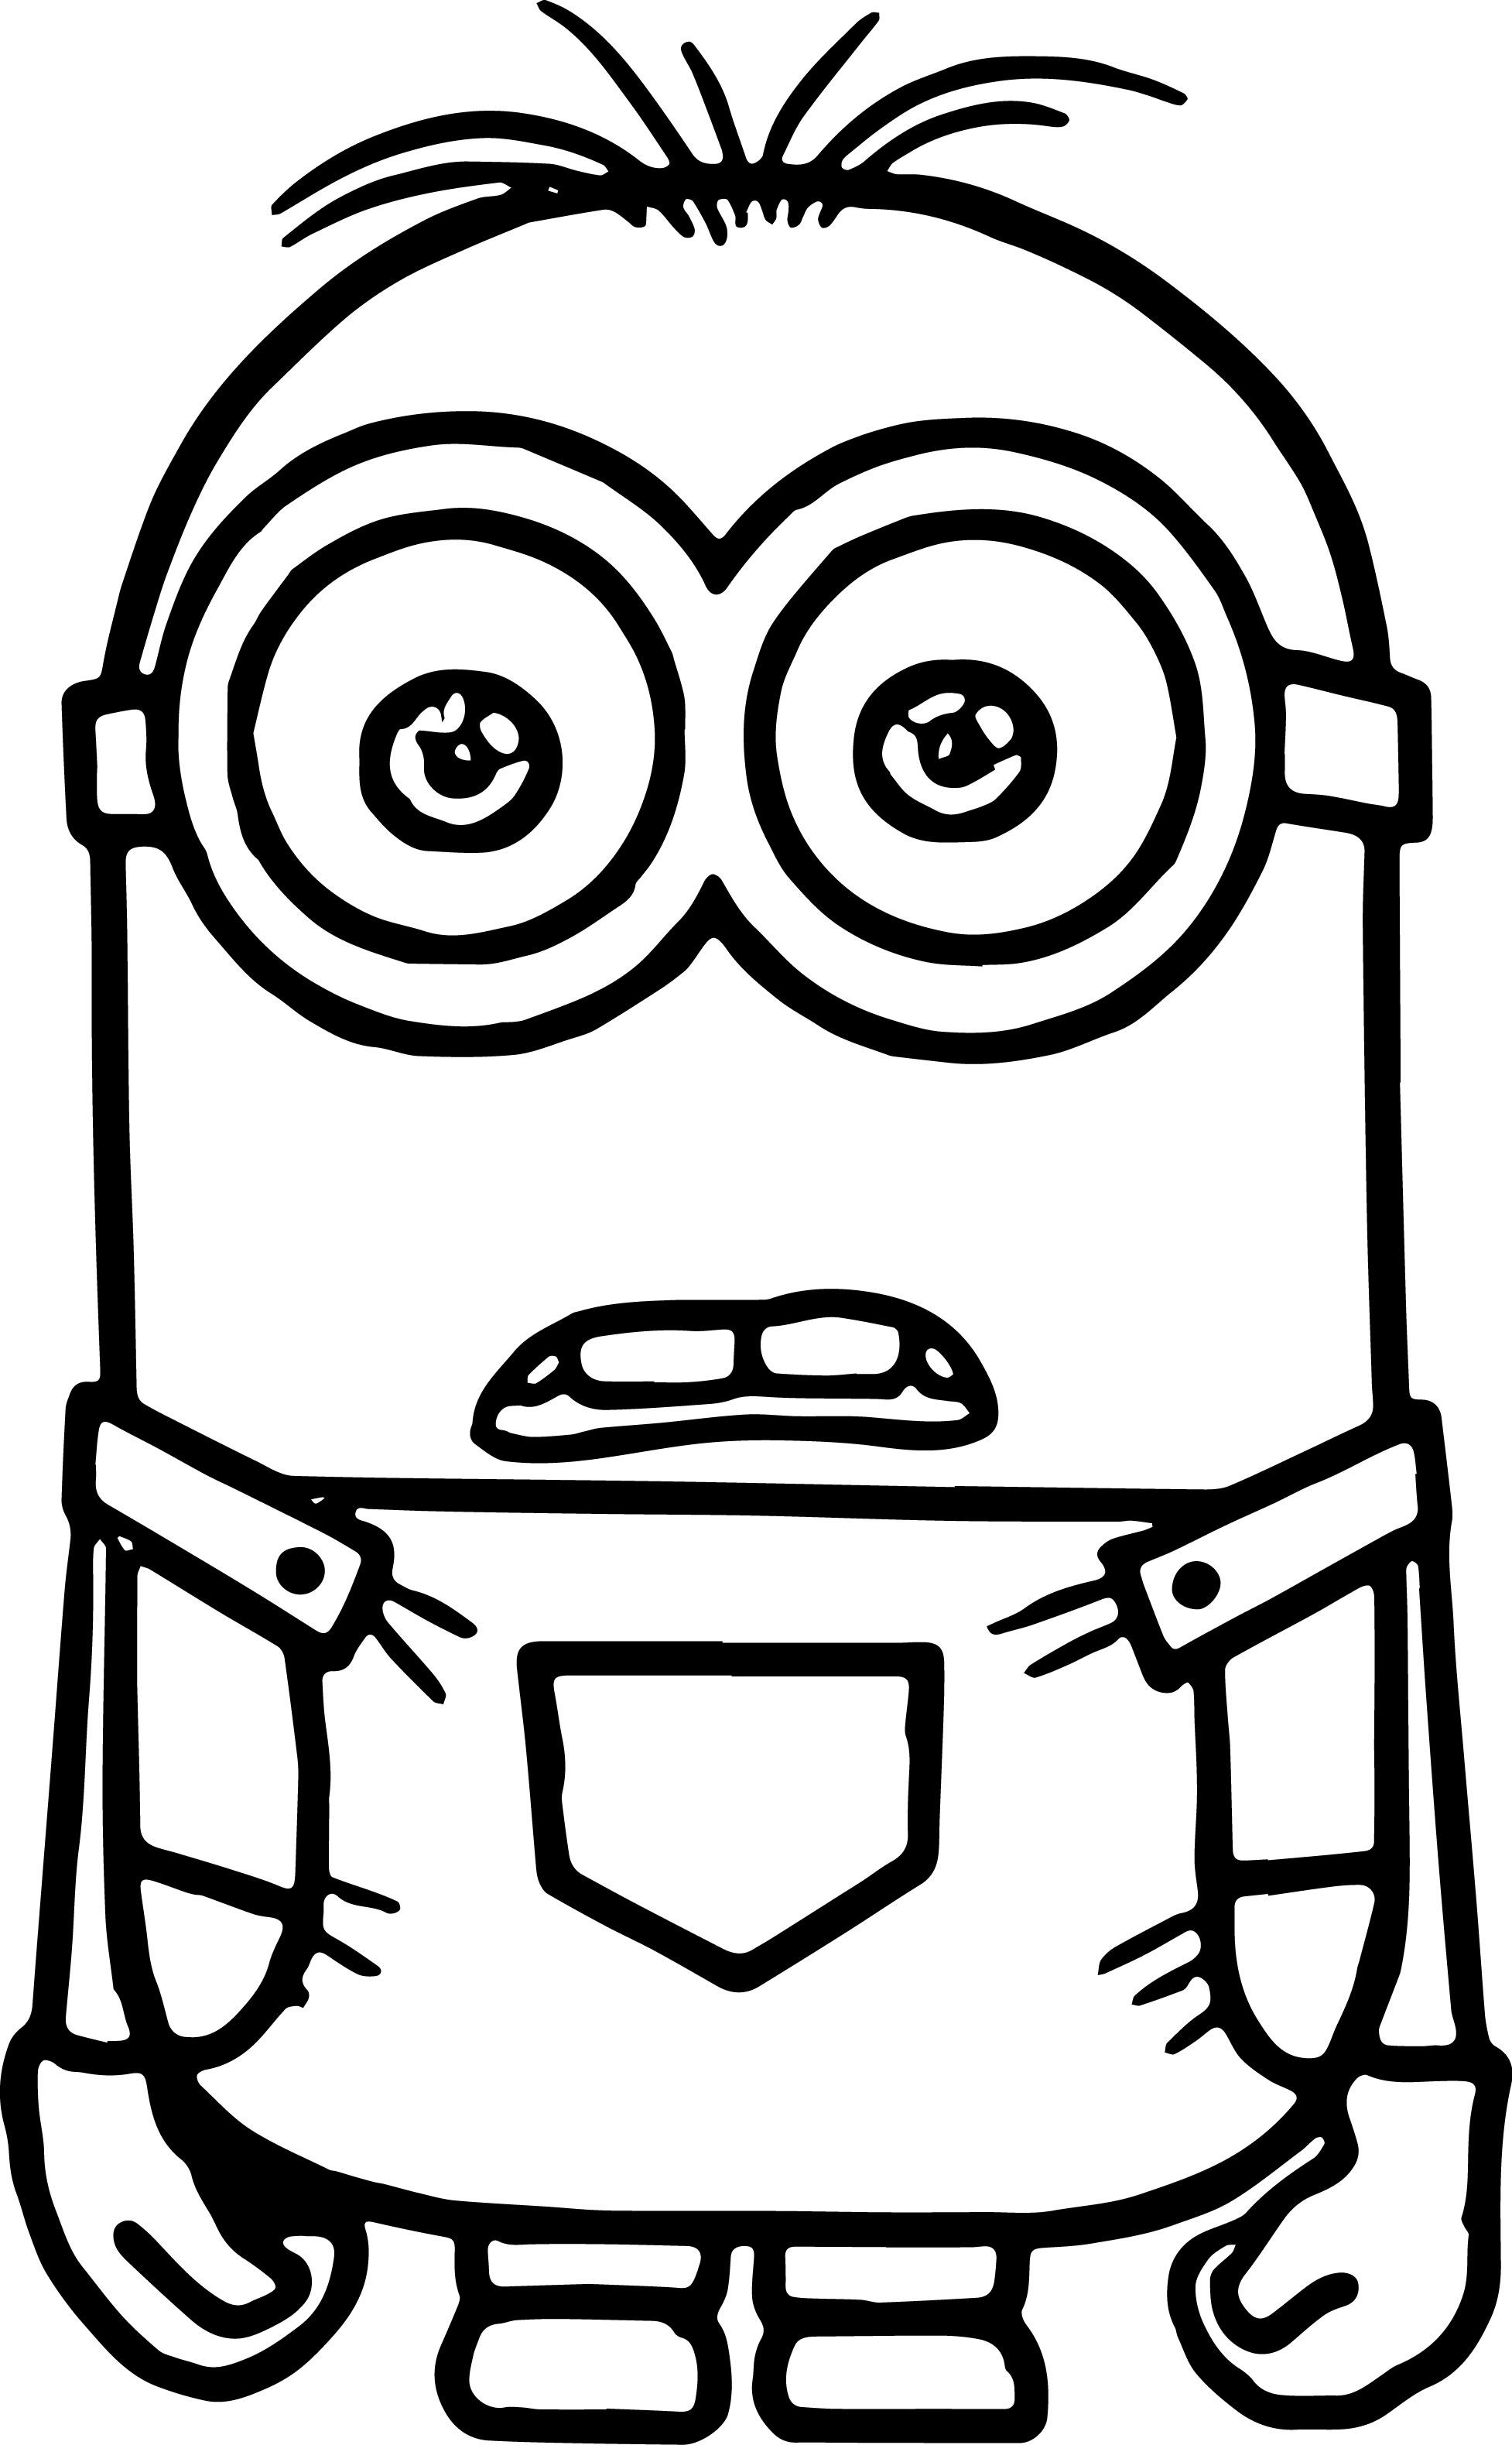 1408 Minions free clipart.